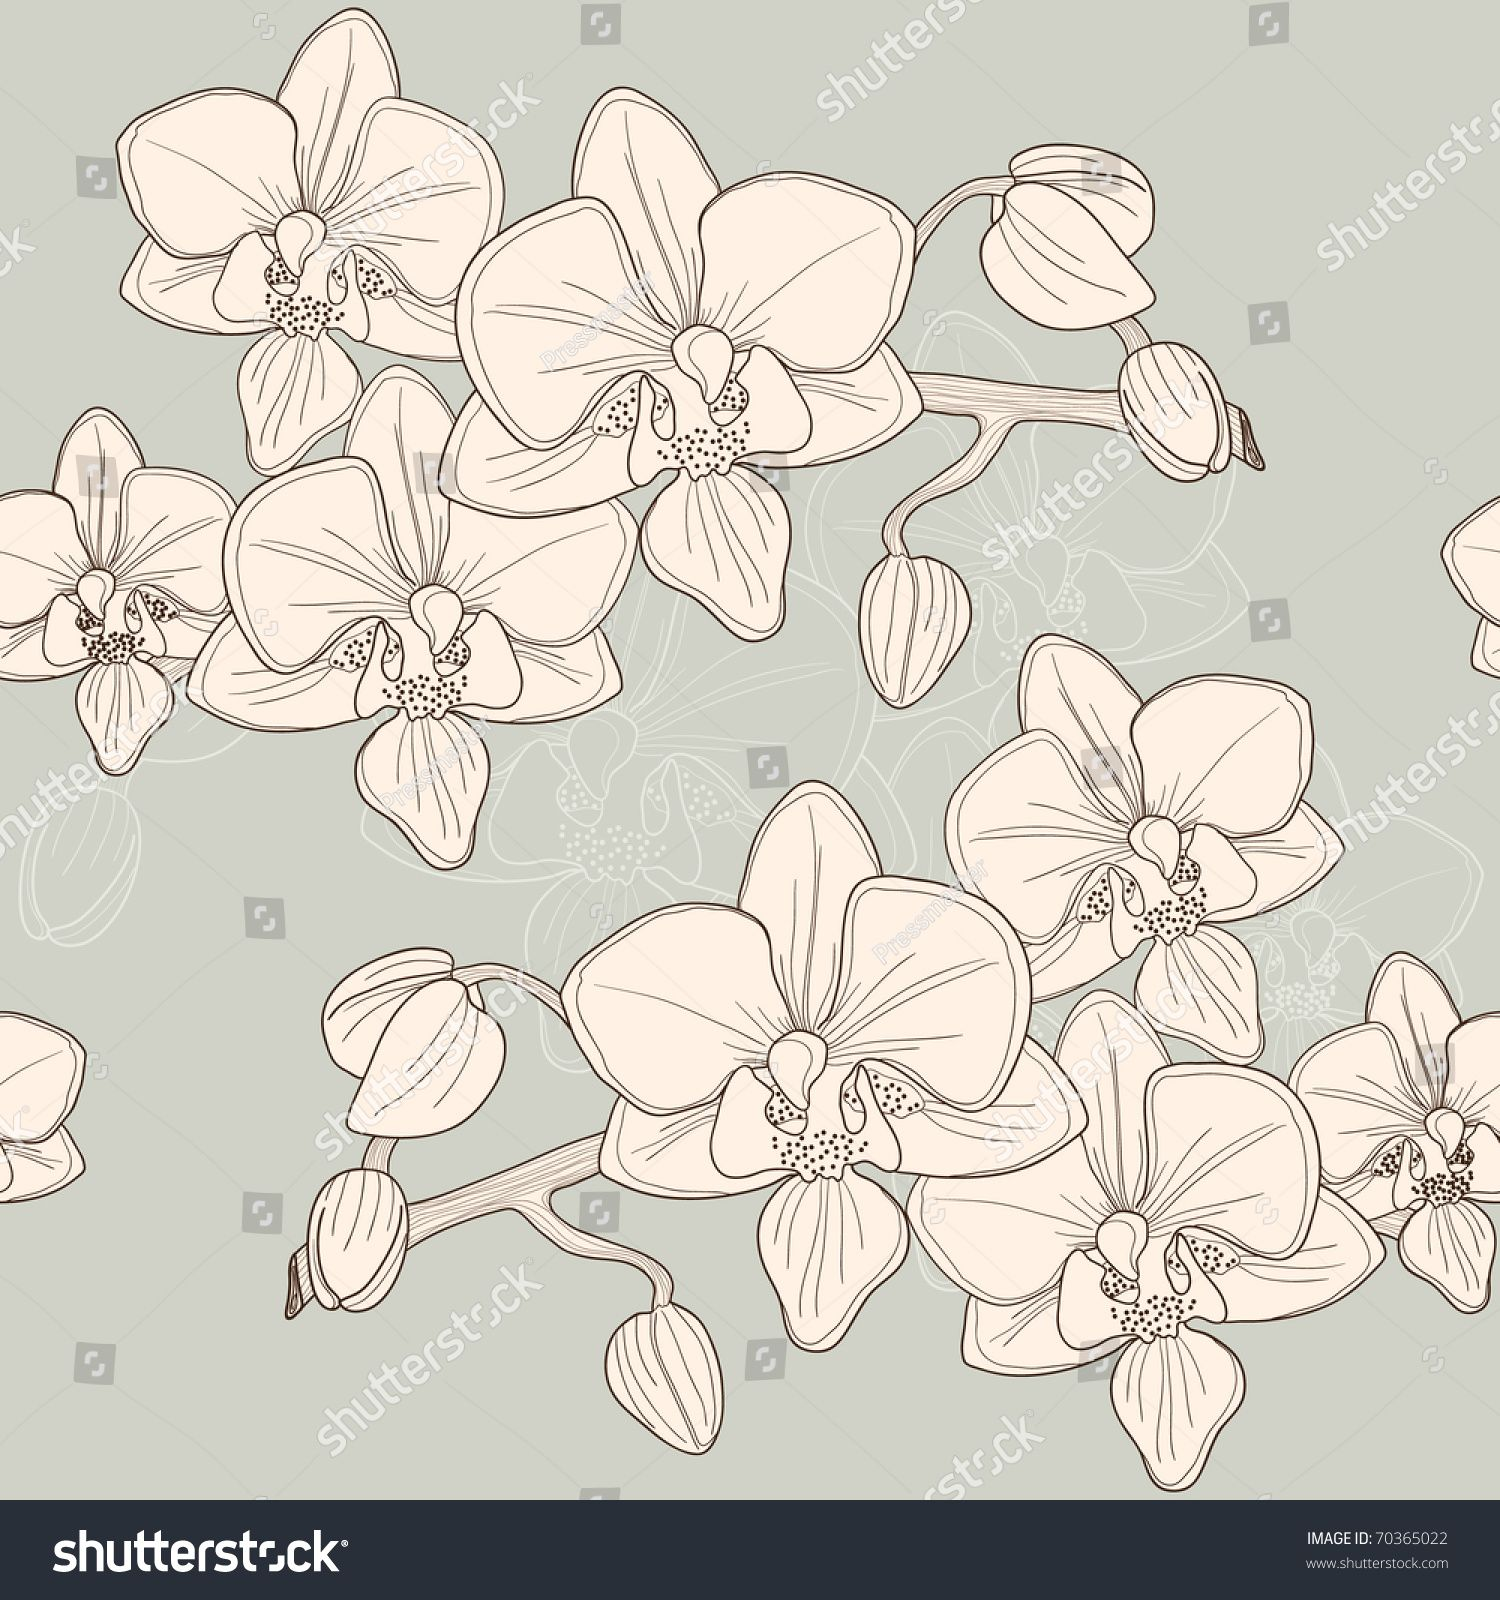 35+ Black And White Orchid Clipart